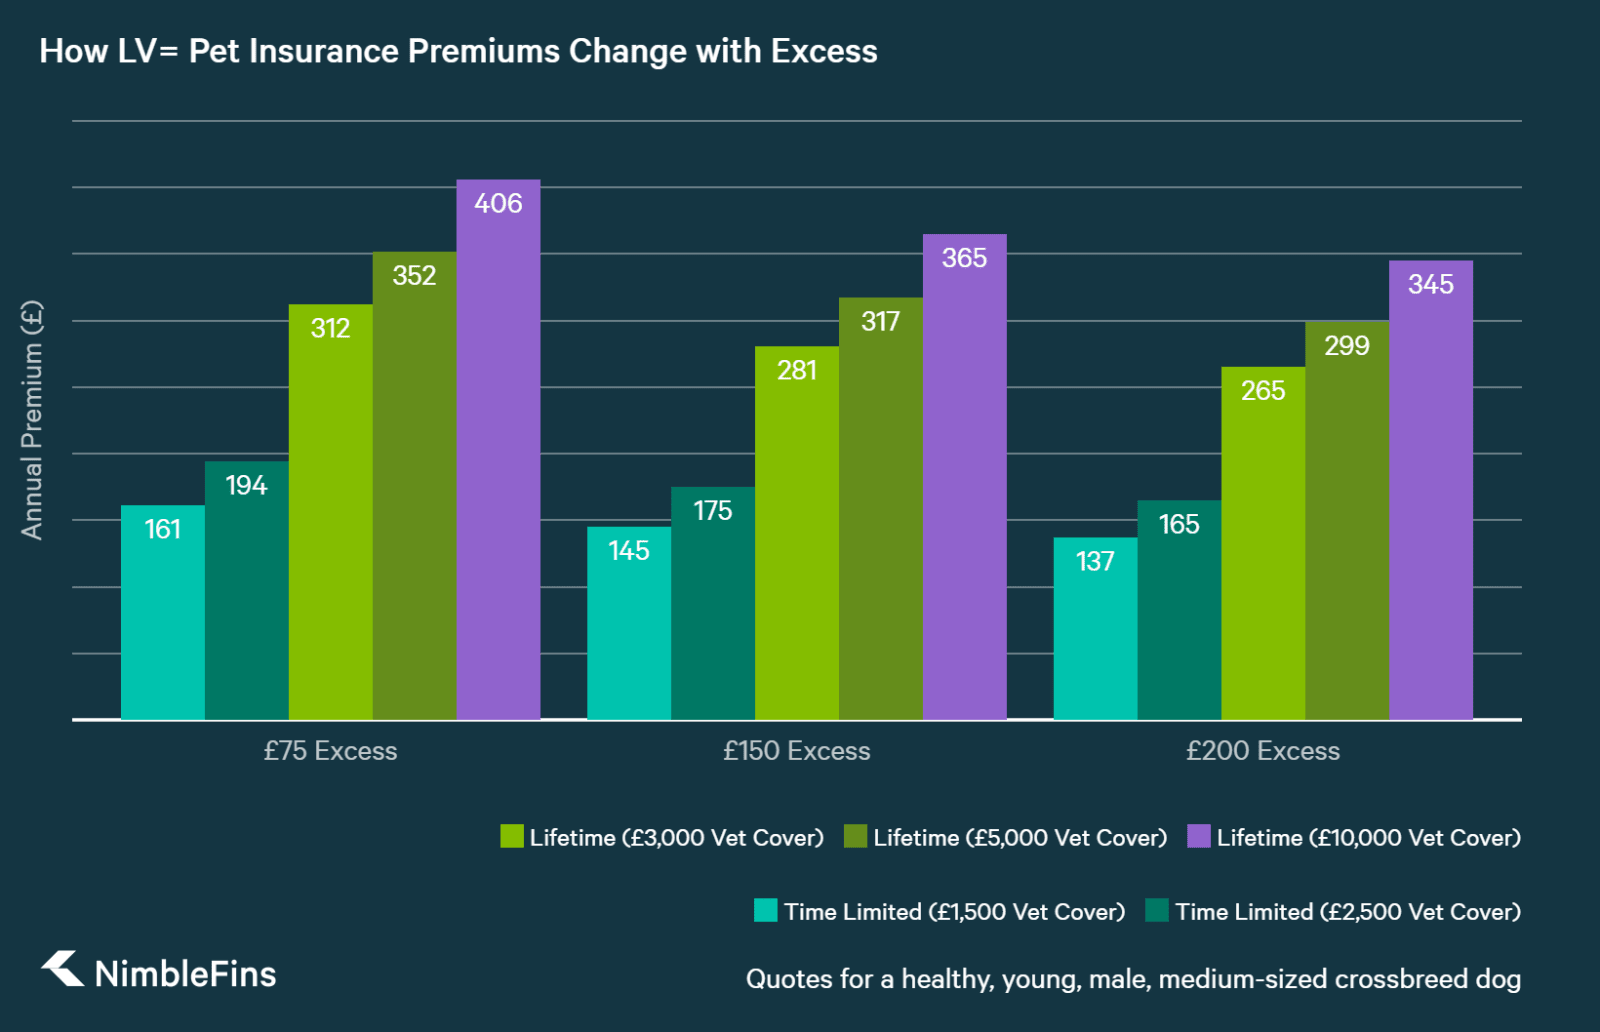 chart comparing LV= pet insurance quotes by excess amount